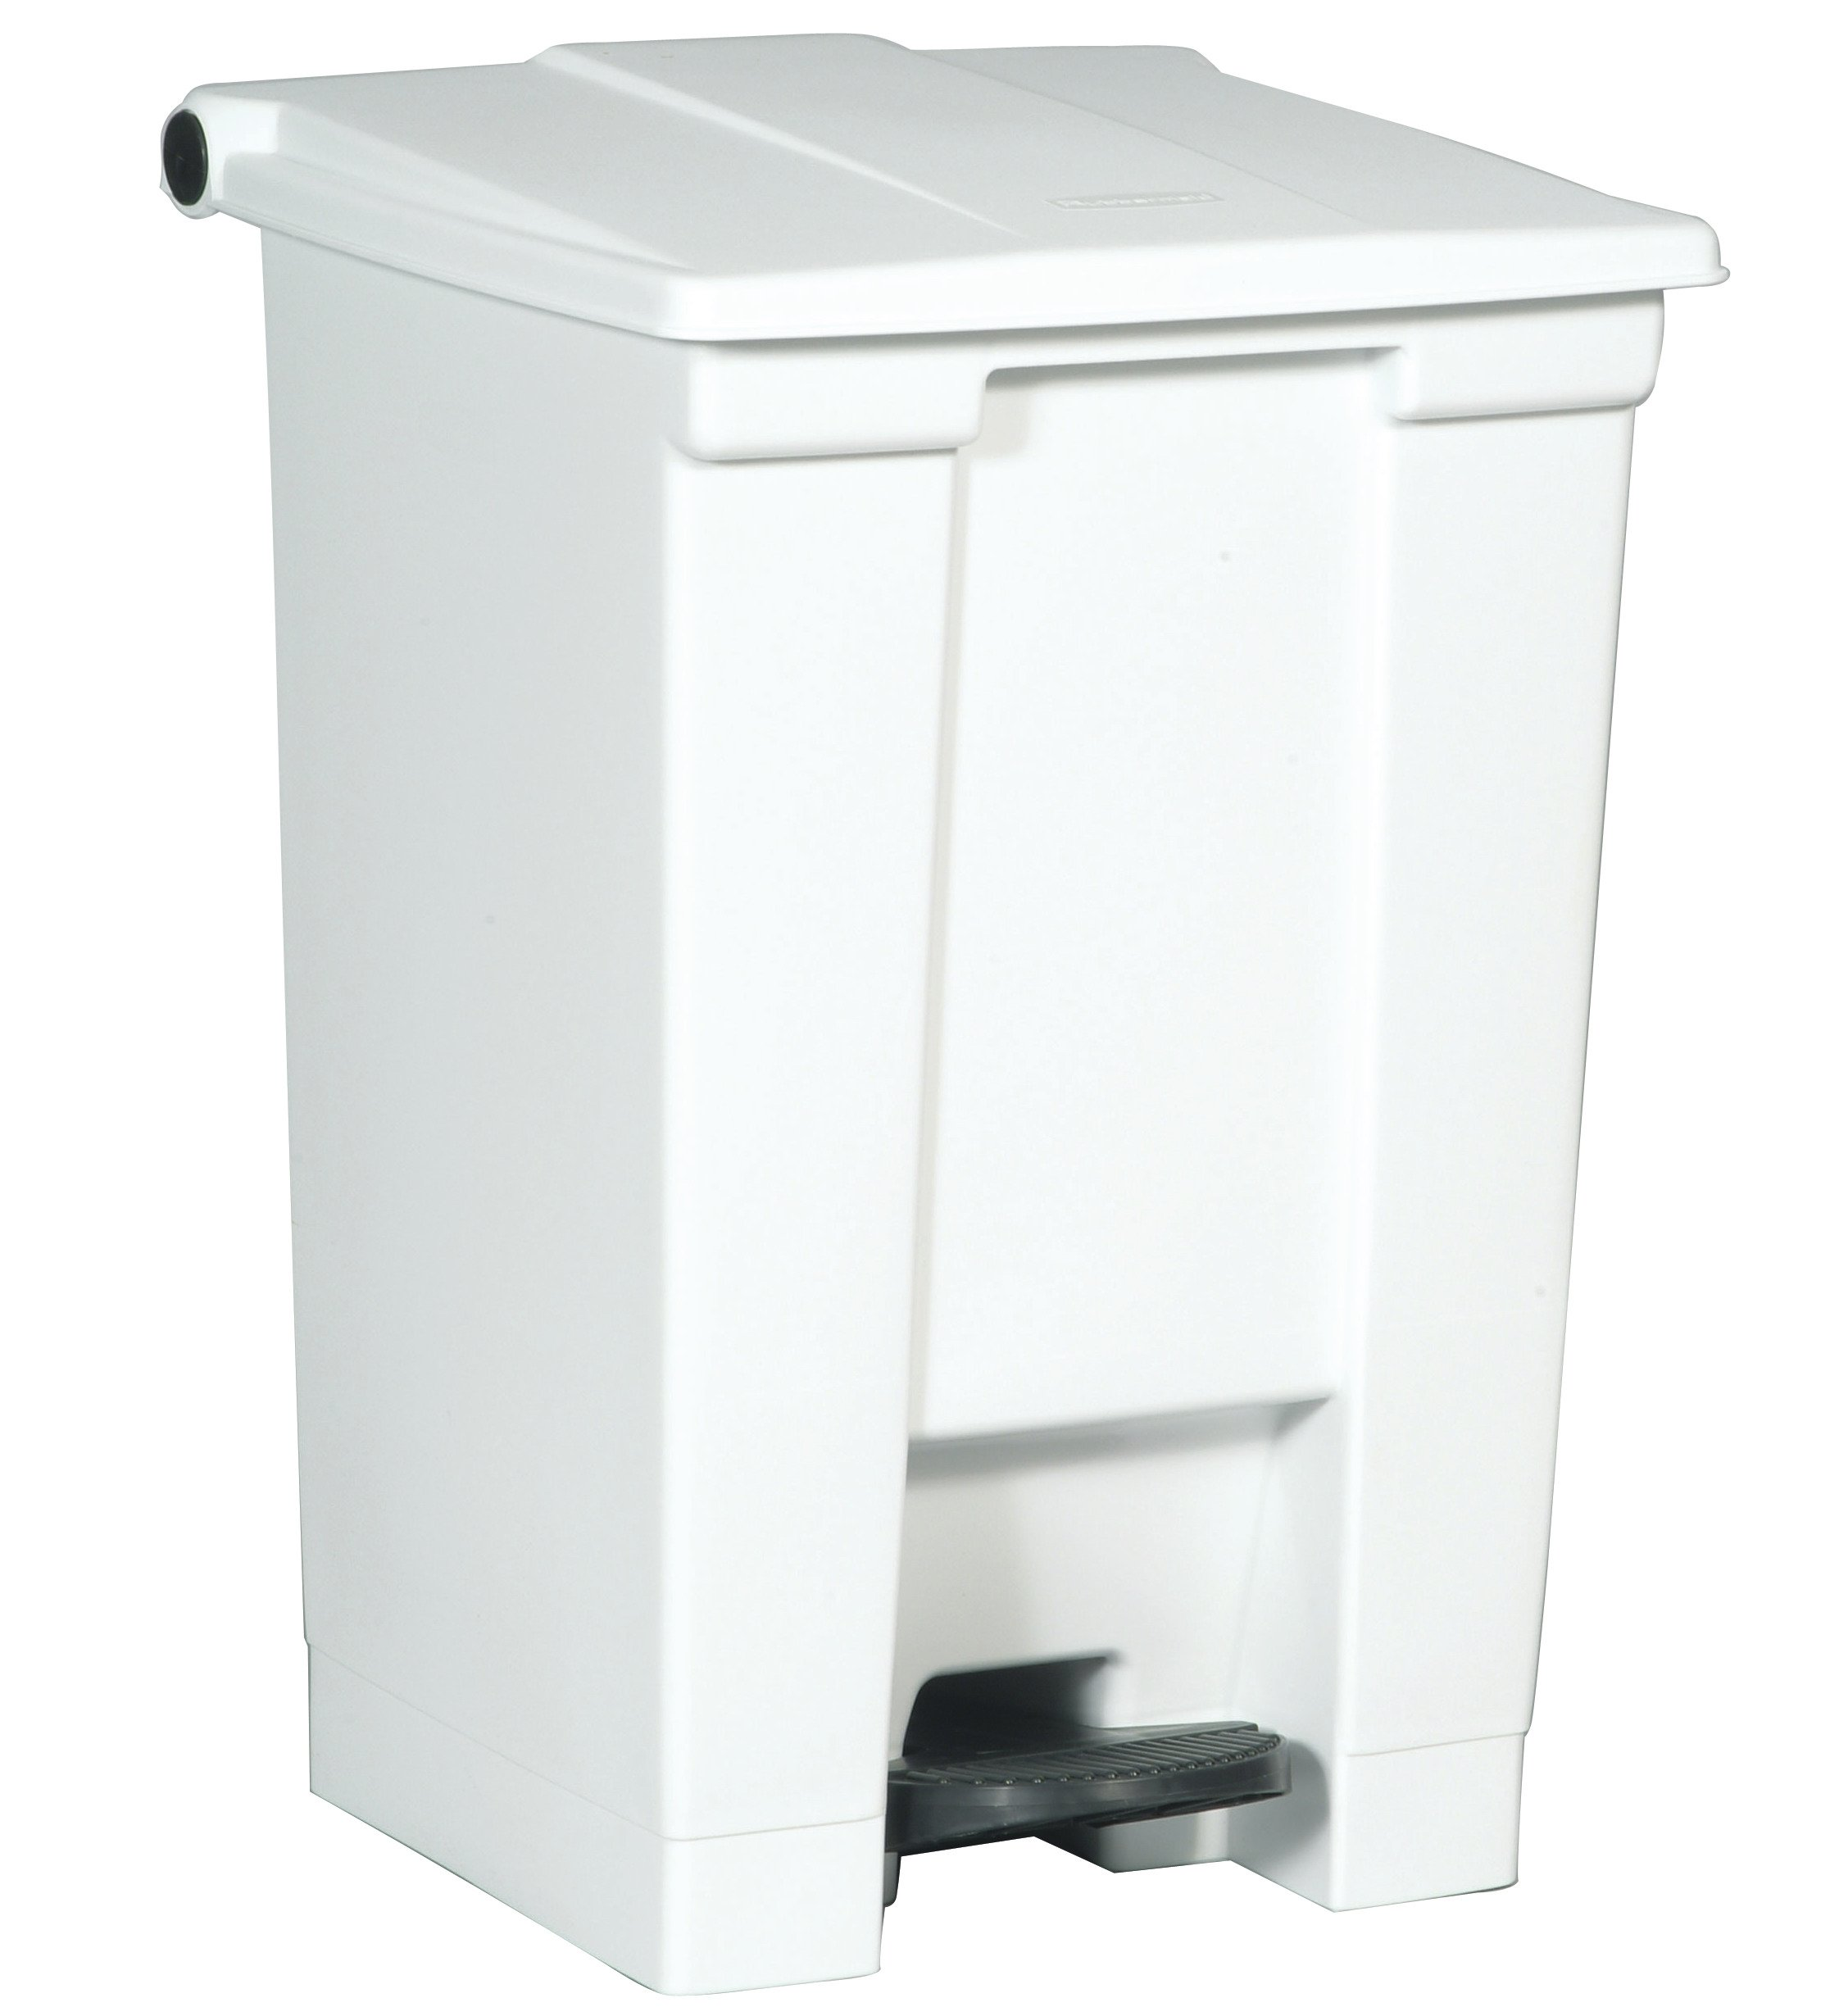 Rubbermaid Commercial Slim Jim Front Step On Trash Can, White, 12 Gallon